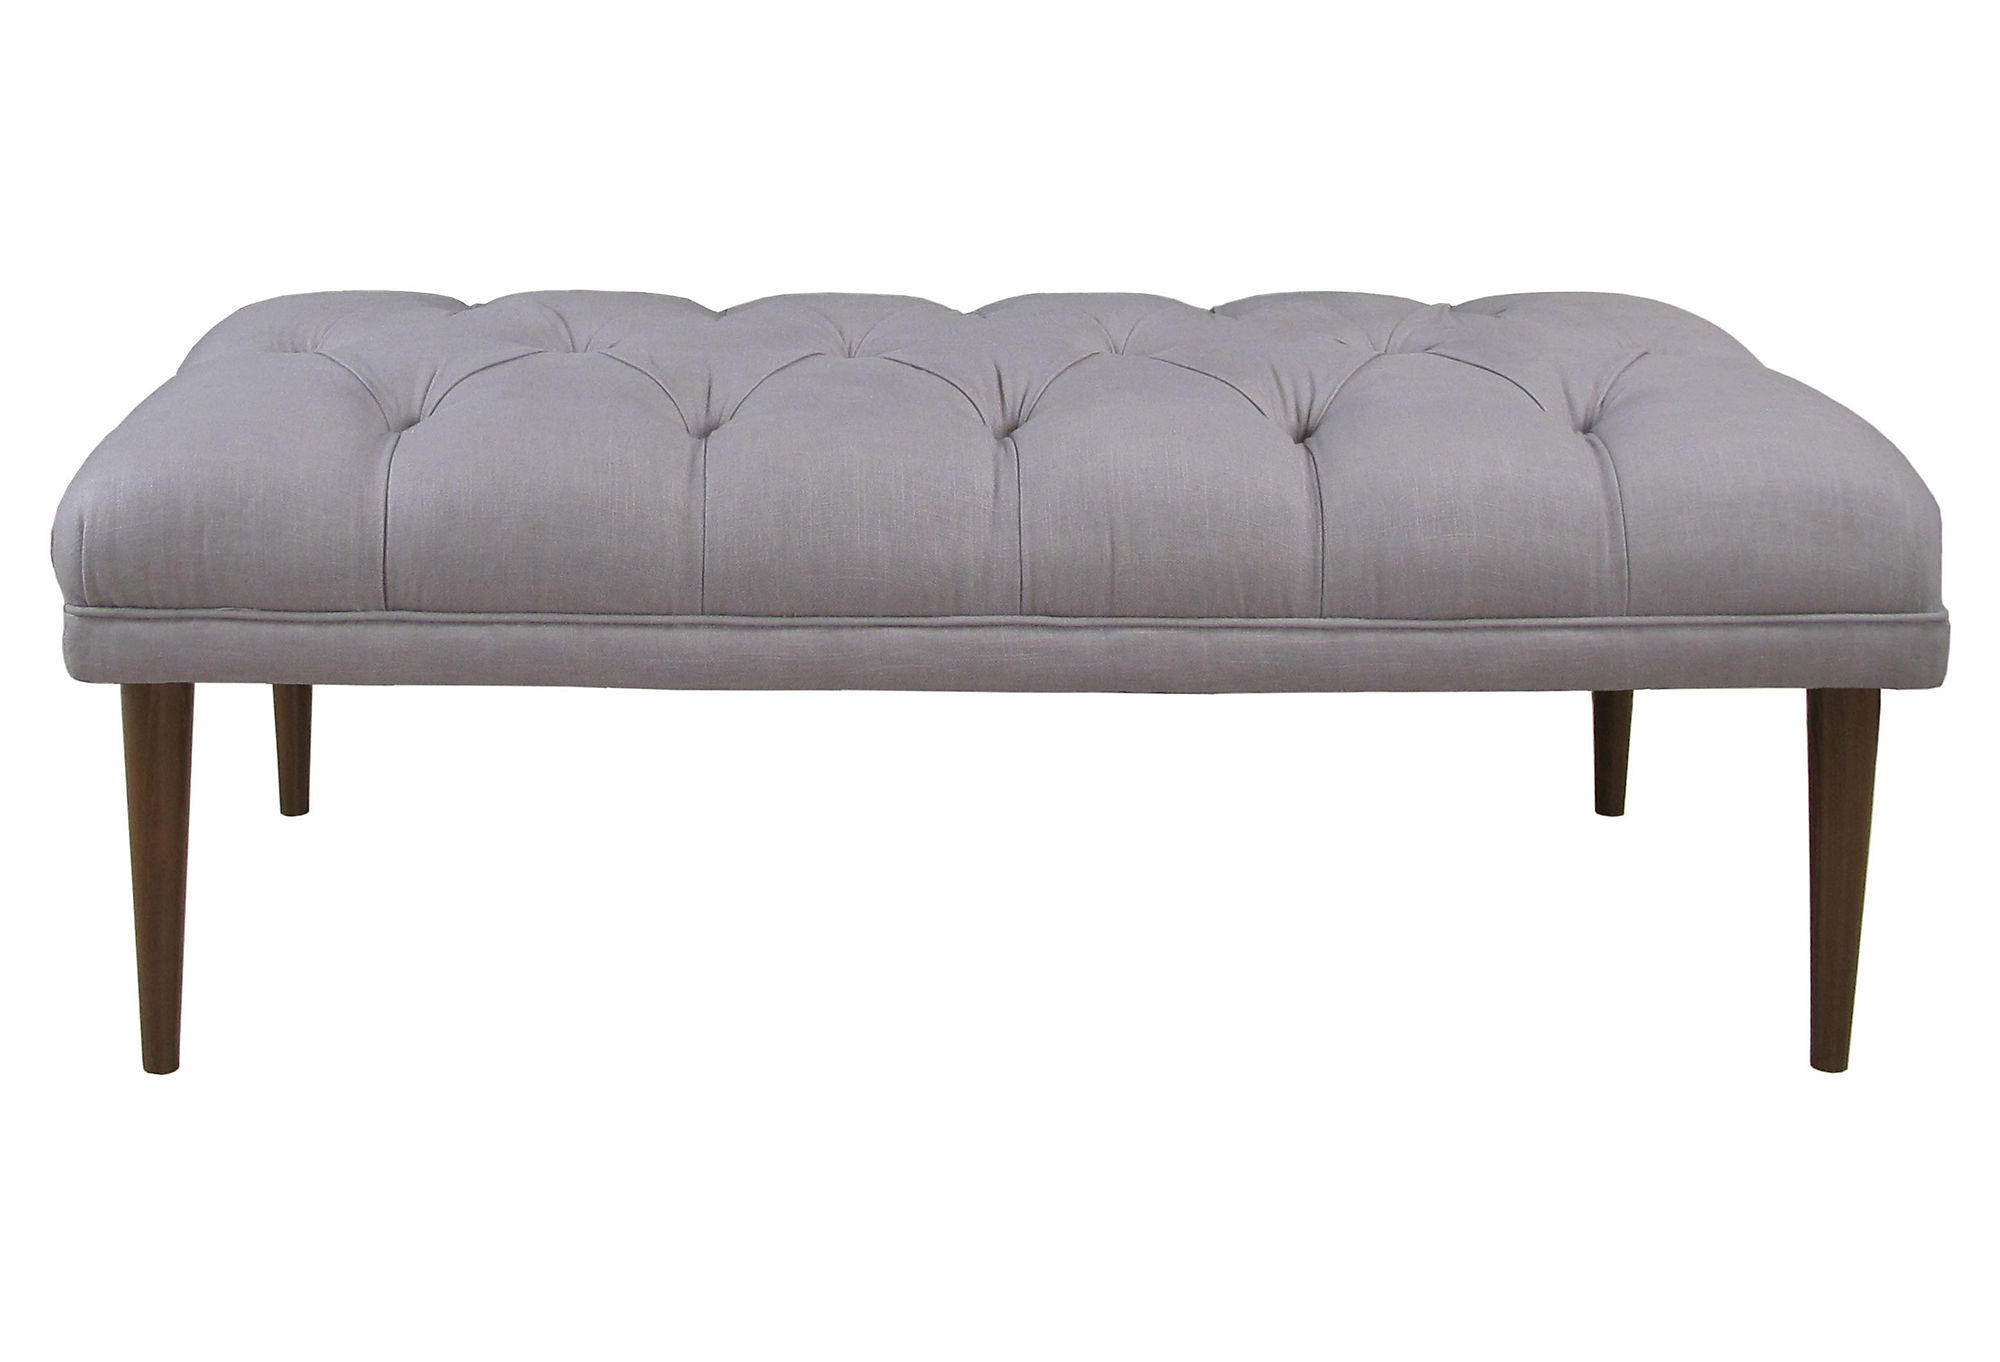 Tufted Foyer Bench : Colette quot tufted bench gray entryway from one kings lane